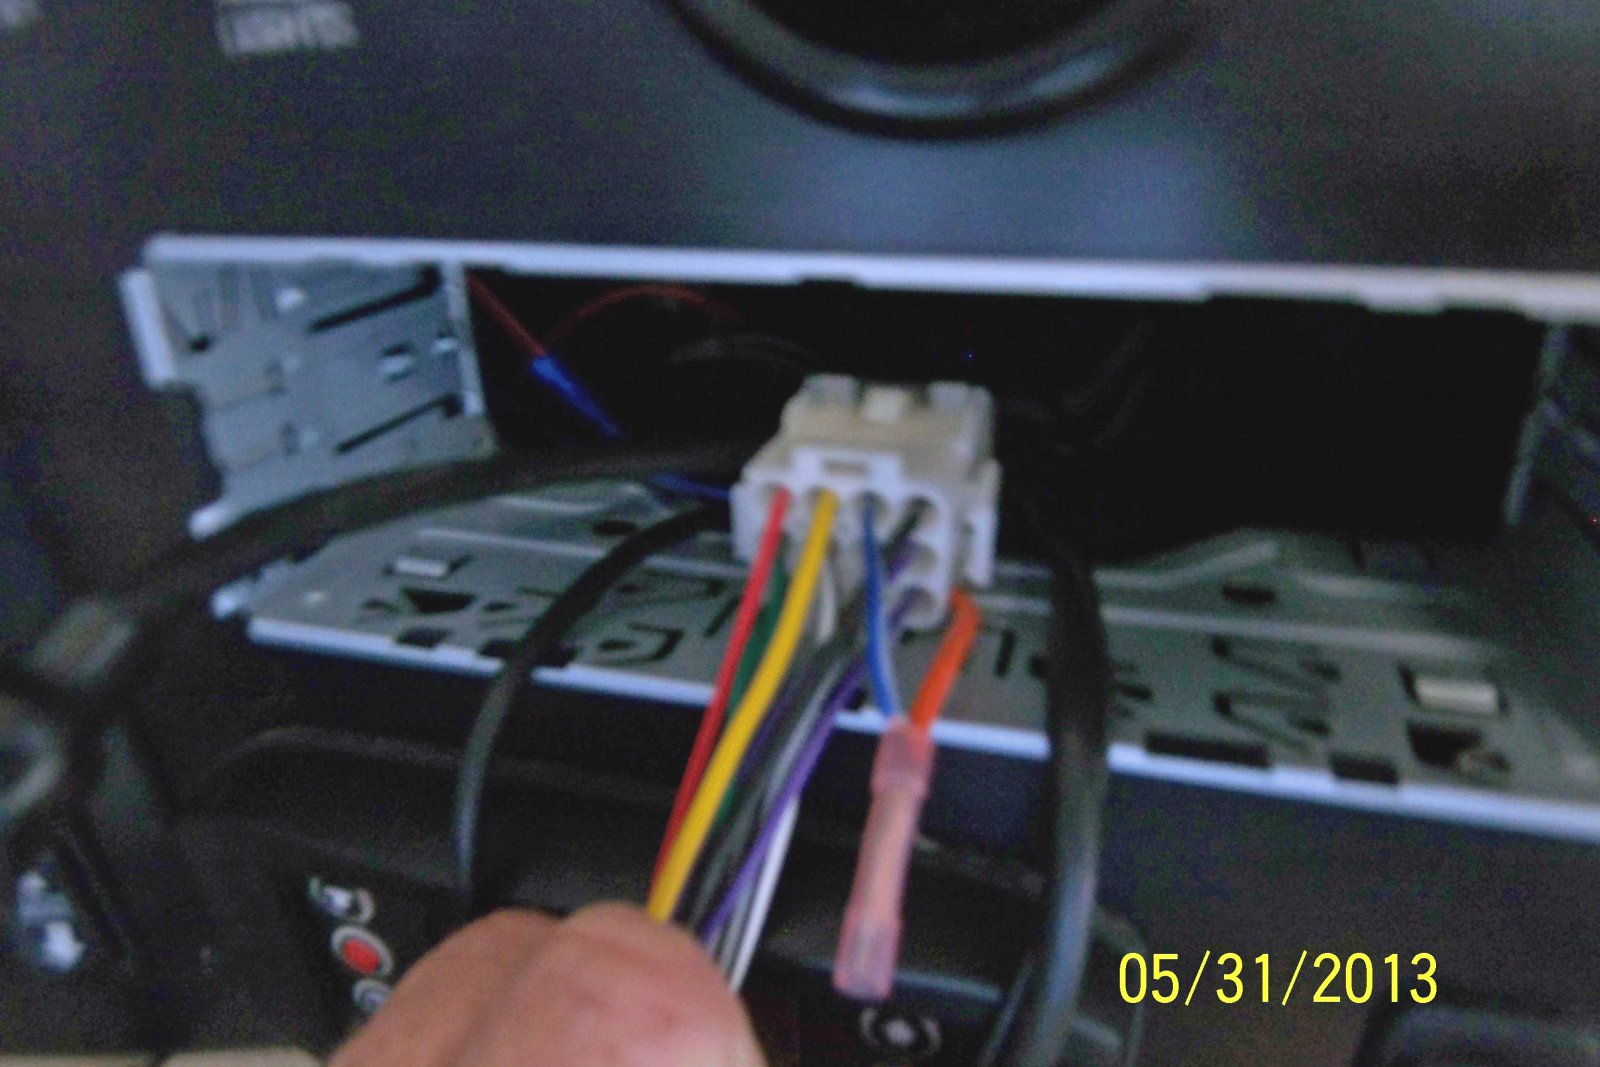 In Dash Radio No Sound Irv2 Forums Wire Harness Bundle And Comes From A Of Wires Under The I Dont Know What Orange Is There Nothing Connected To Other End